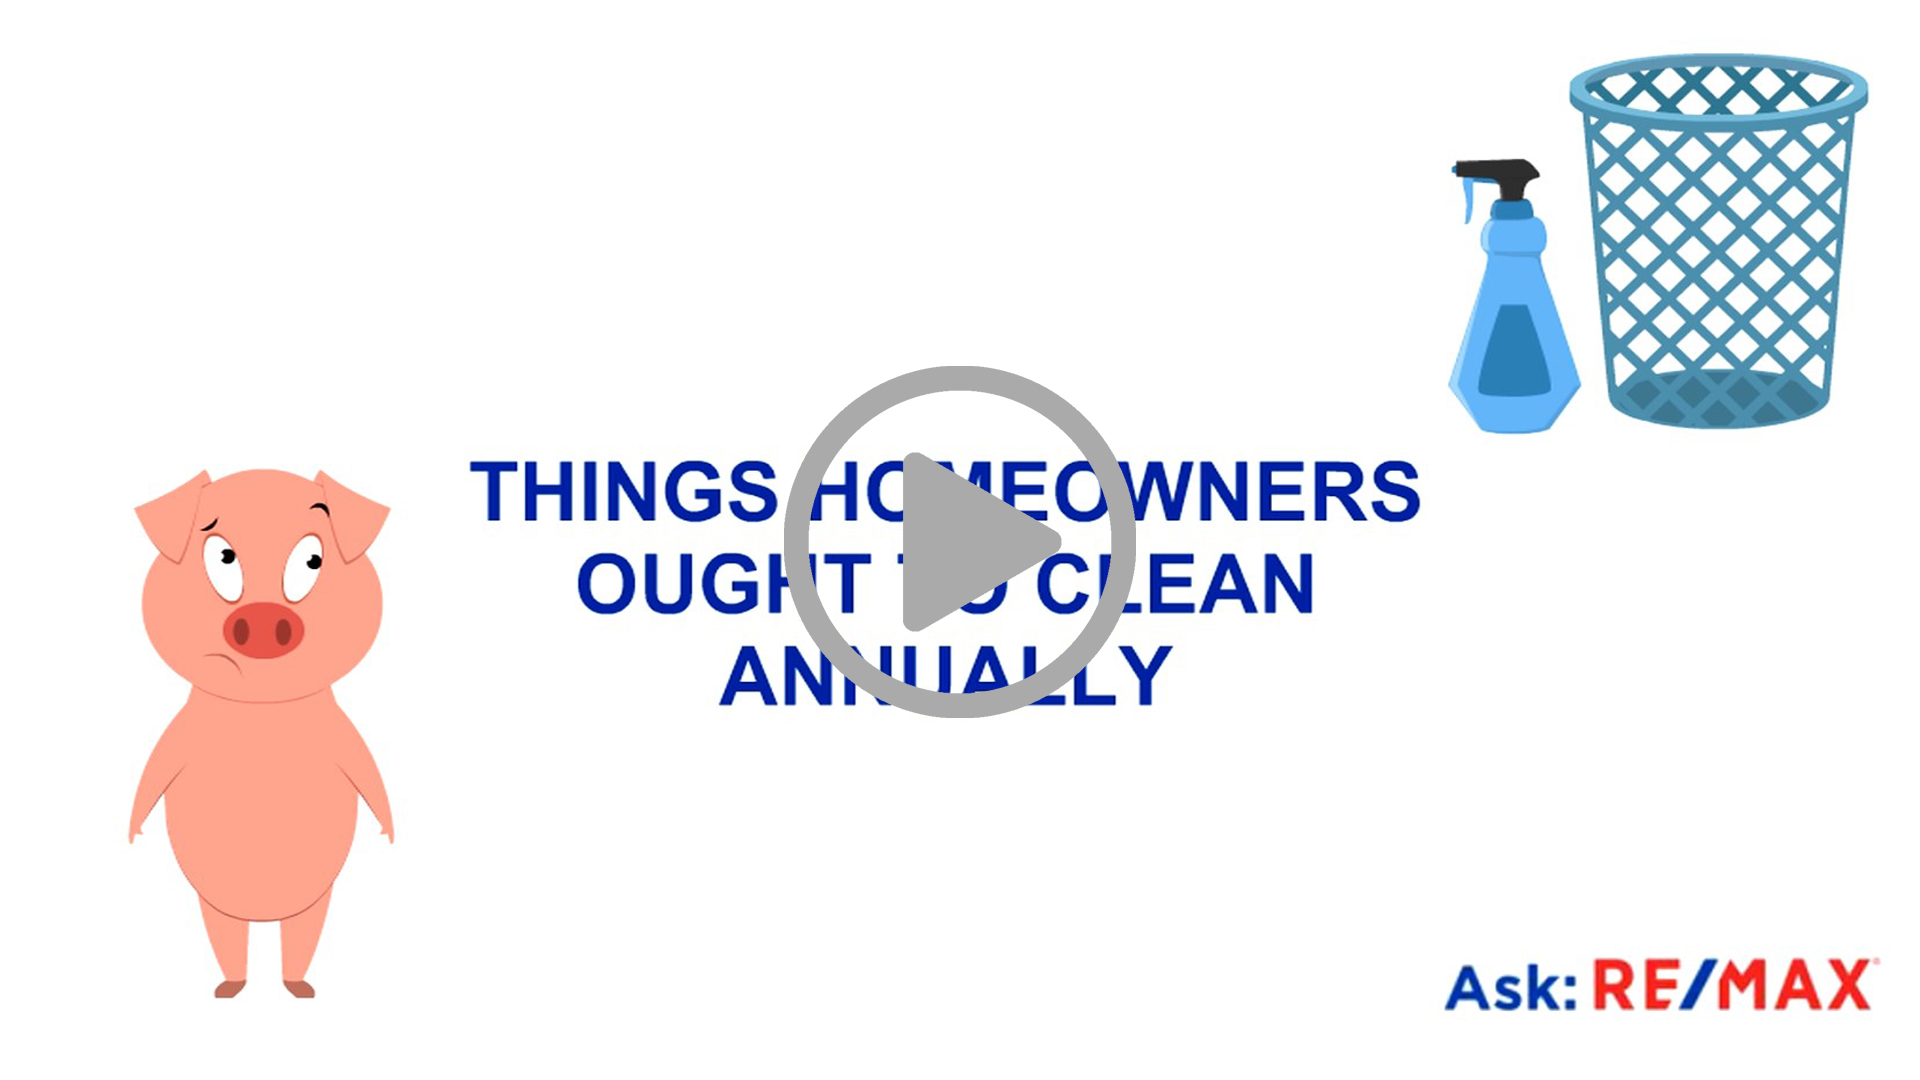 THINGS WE OUGHT TO BE CLEANING ANNUALLY